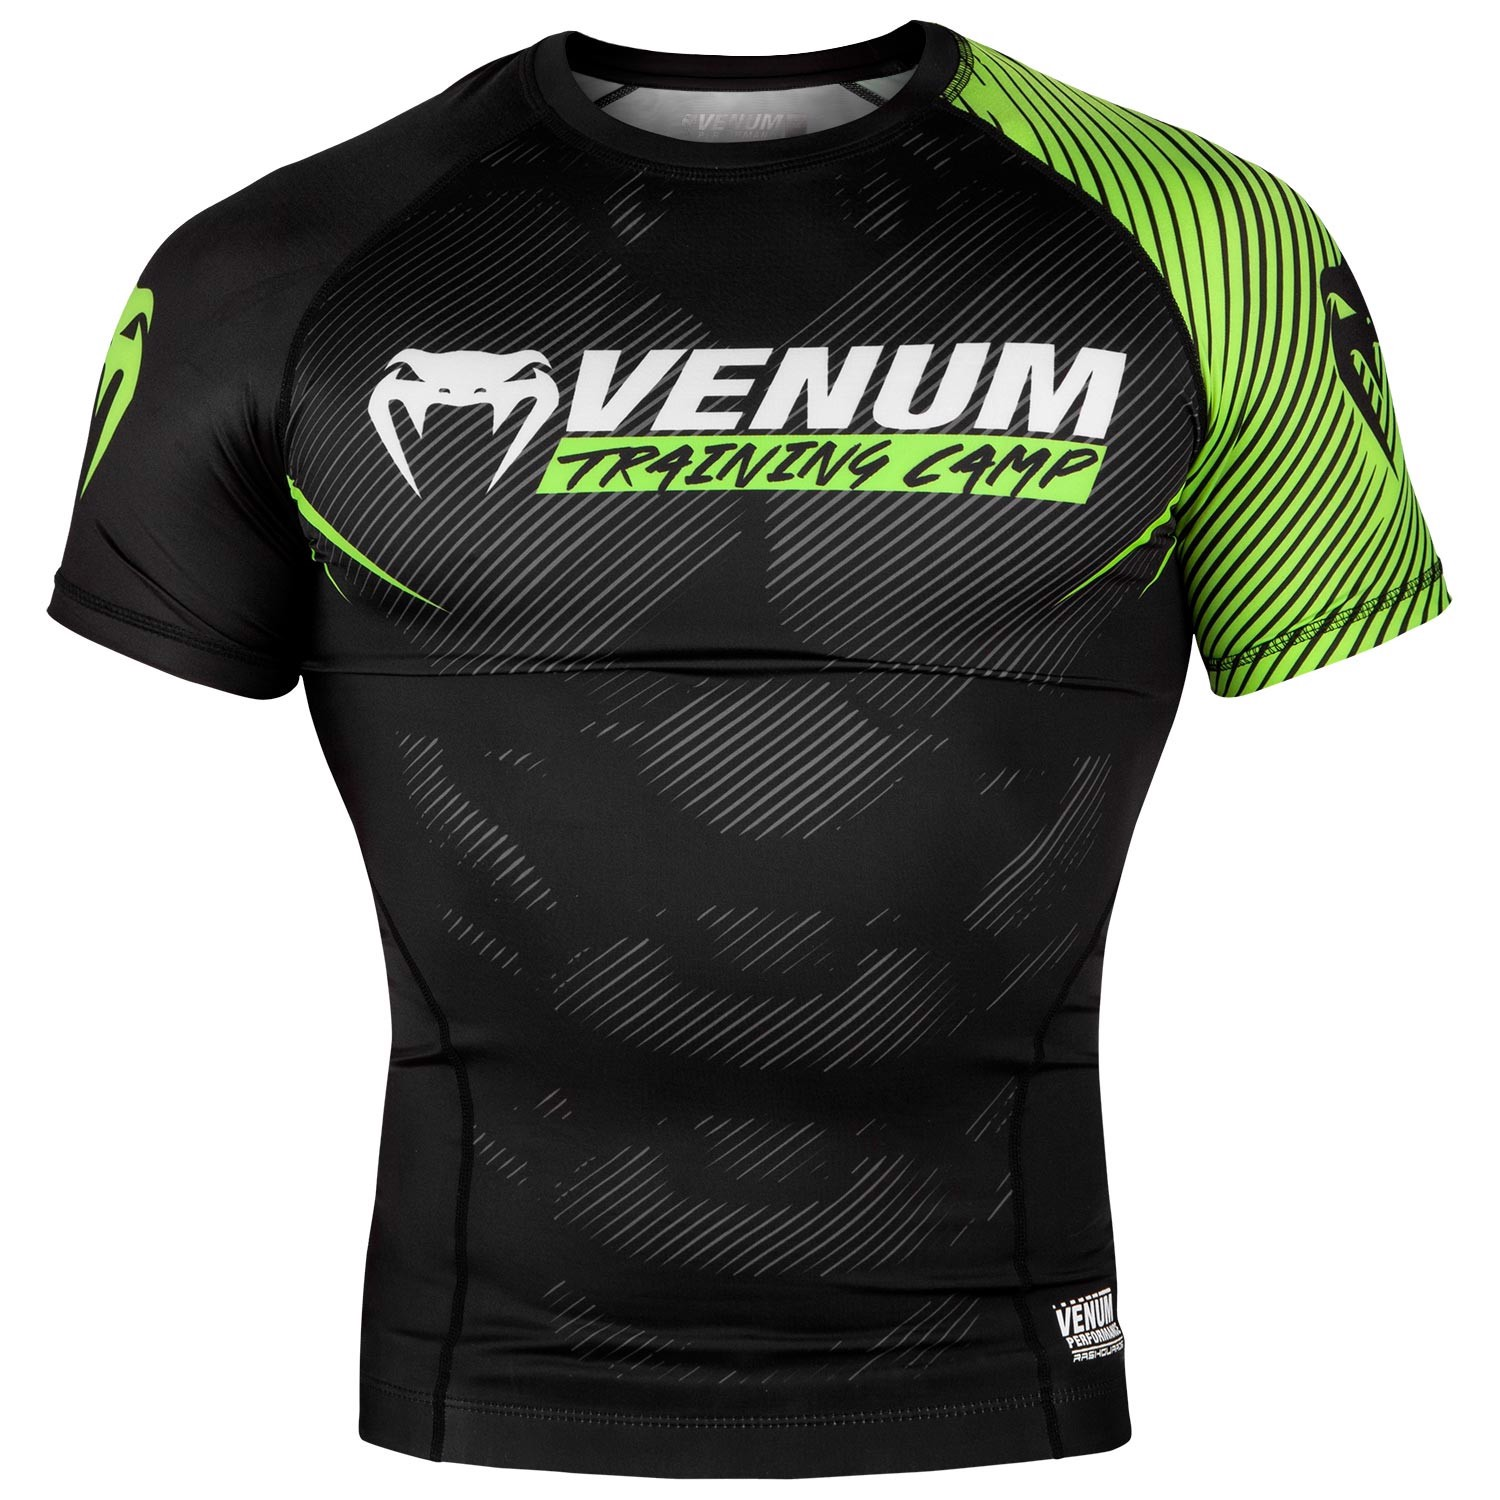 ÁO BÓ VENUM TRAINING CAMP 2.0 RASHGUARD - SHORT SLEEVES - BLACK/NEO YELLOW